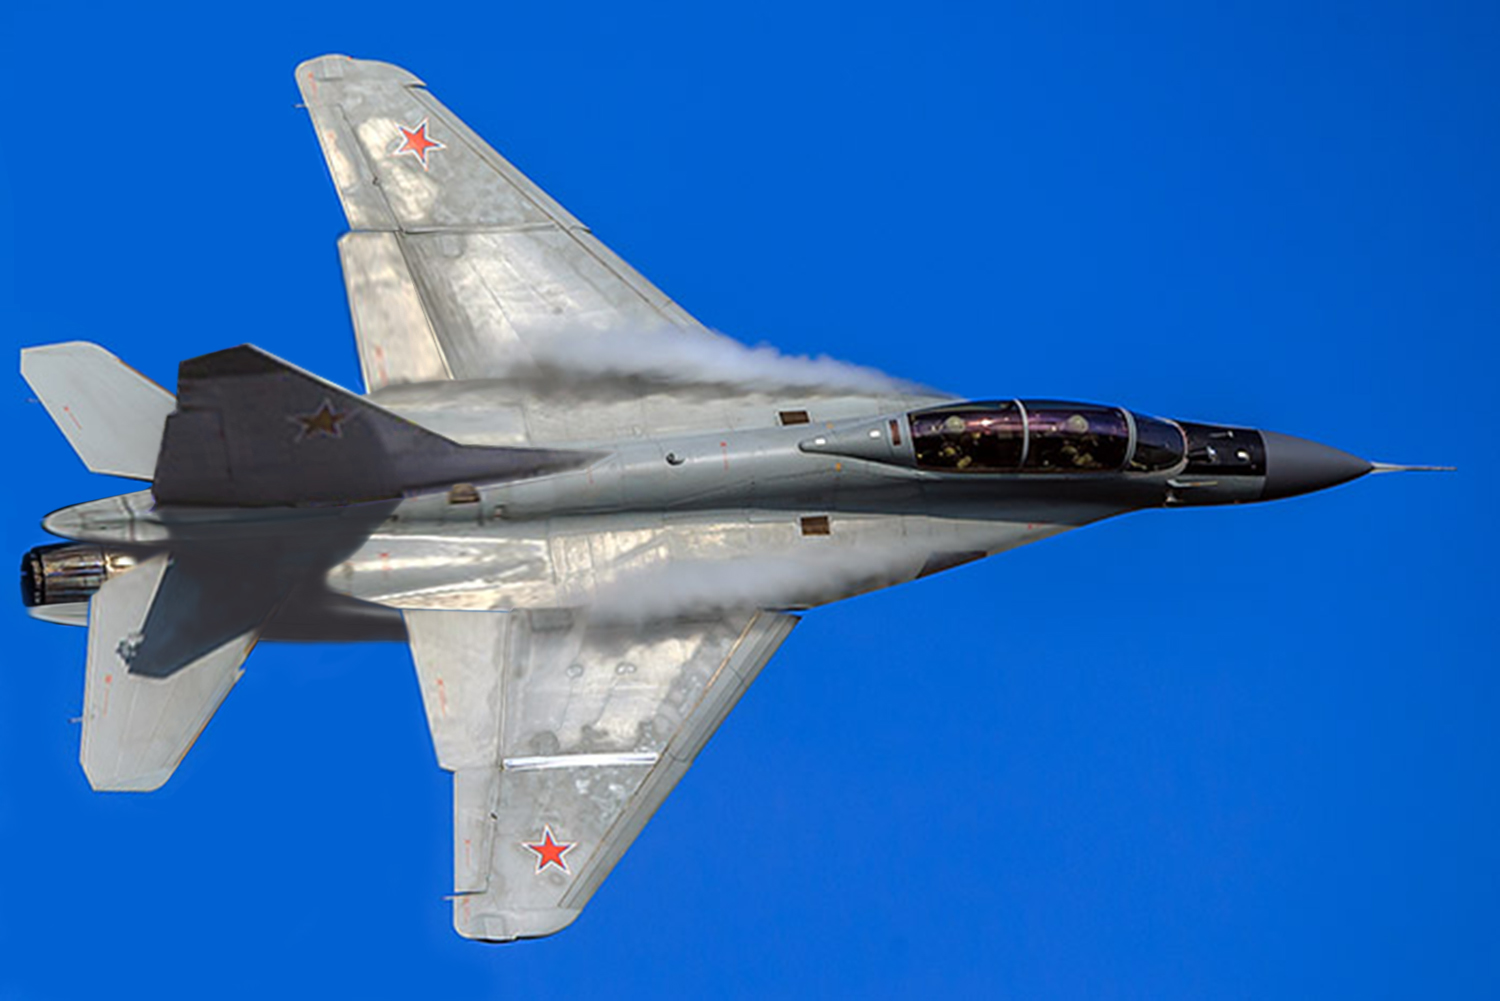 Mig 29 carriers single engine